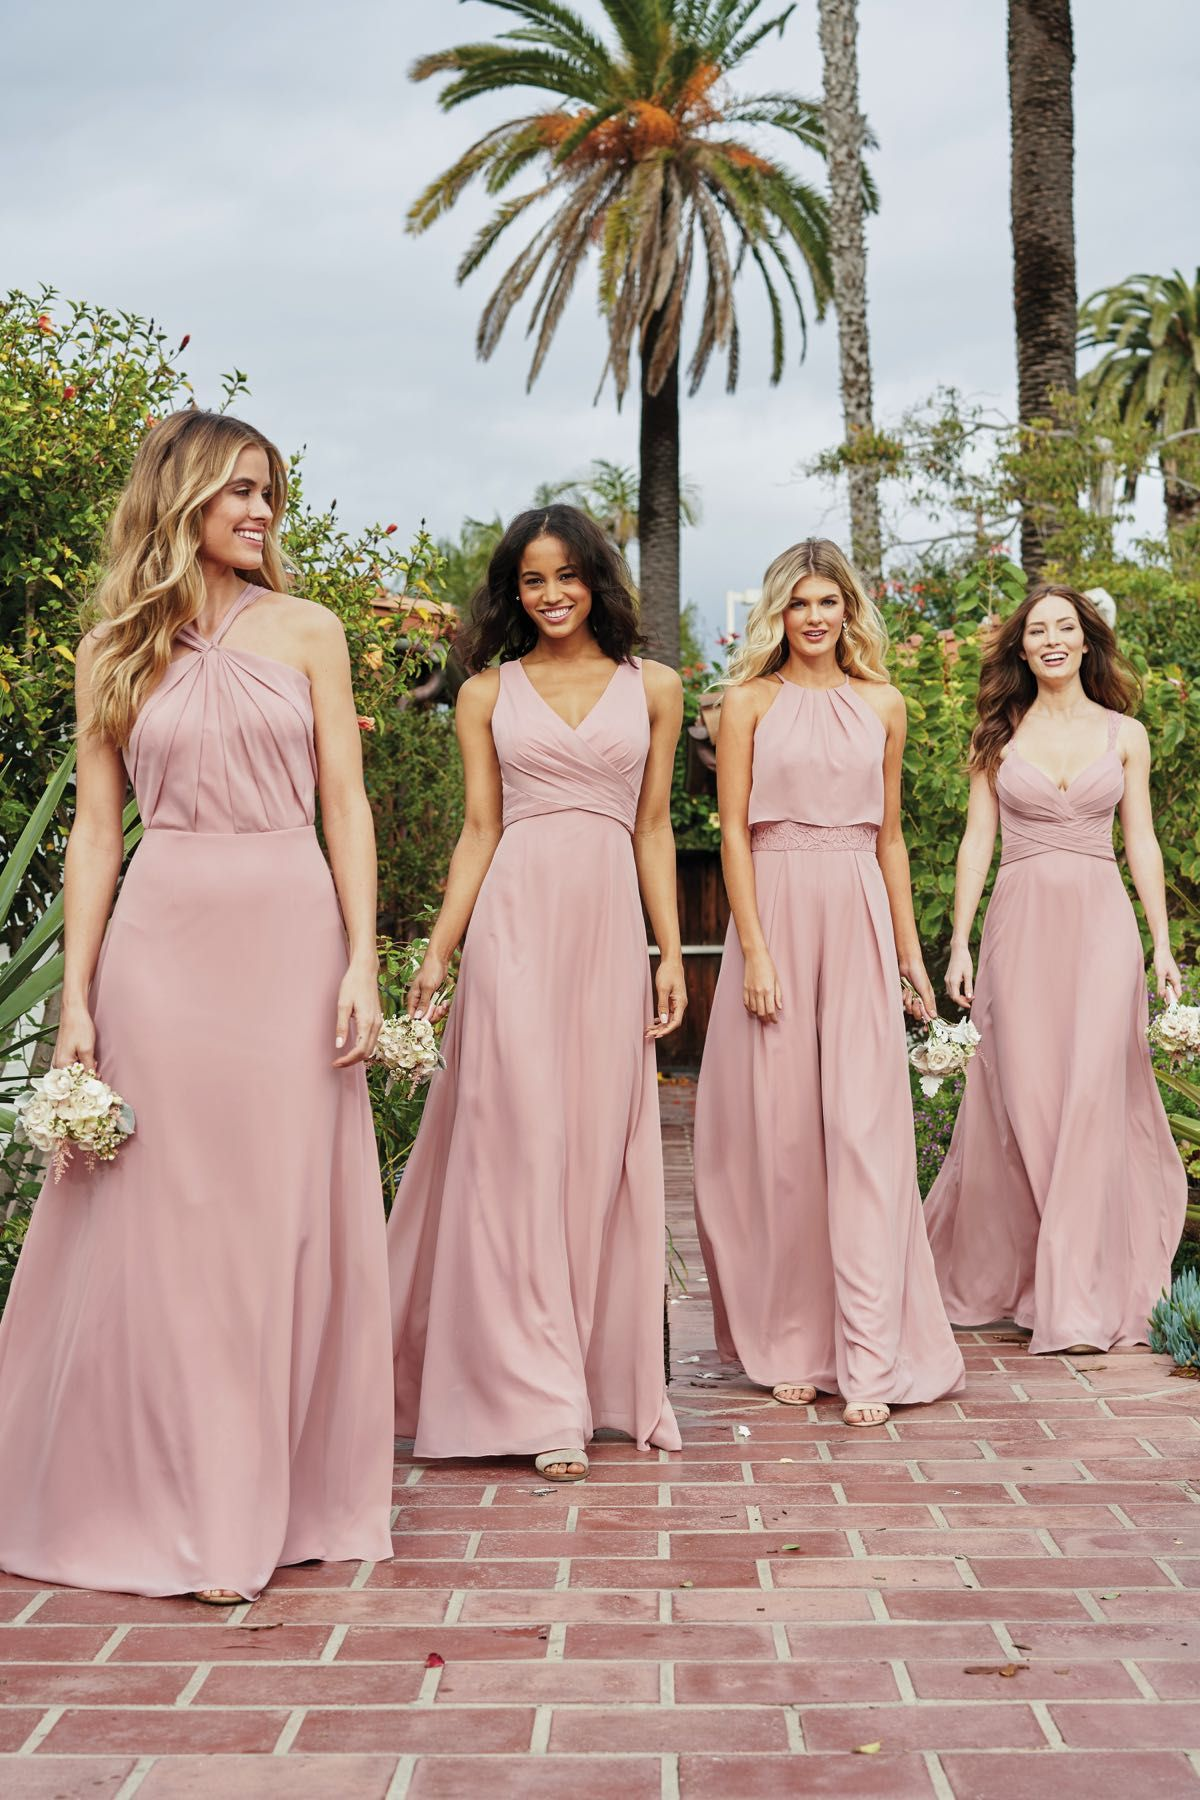 P216065 Charlotte Chiffon & Lace Bridesmaid Jumpsuit with High Jewel Neckline